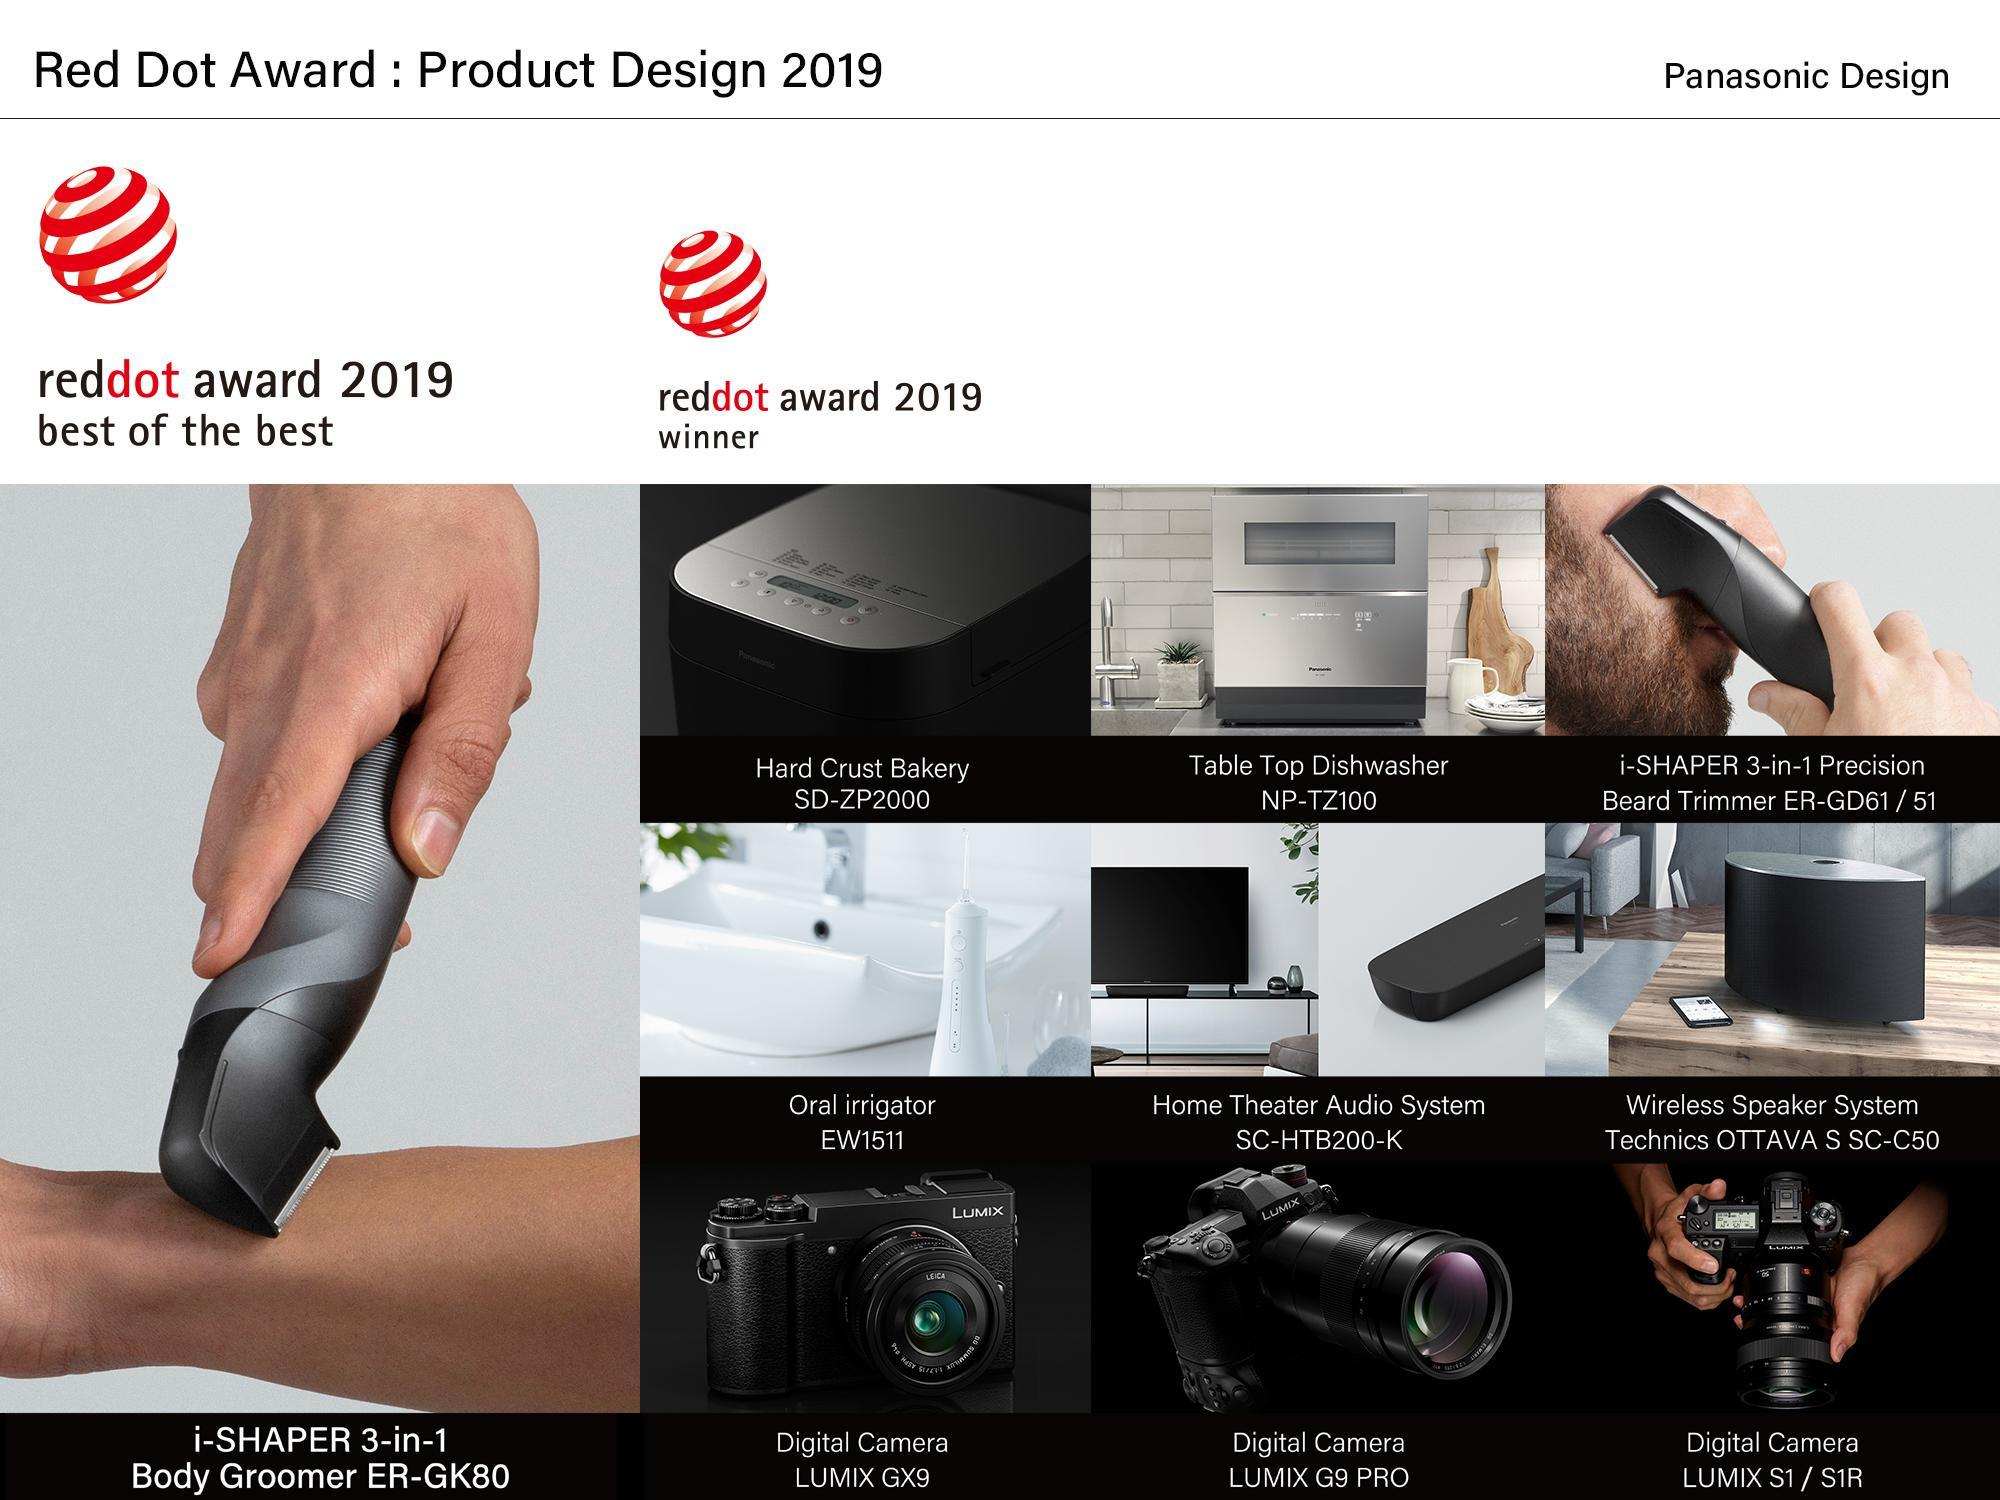 Panasonic Body Trimmer Wins Best Of The Best Award In Product Design Category Of The International Red Dot Design Awards Panasonic Newsroom Global